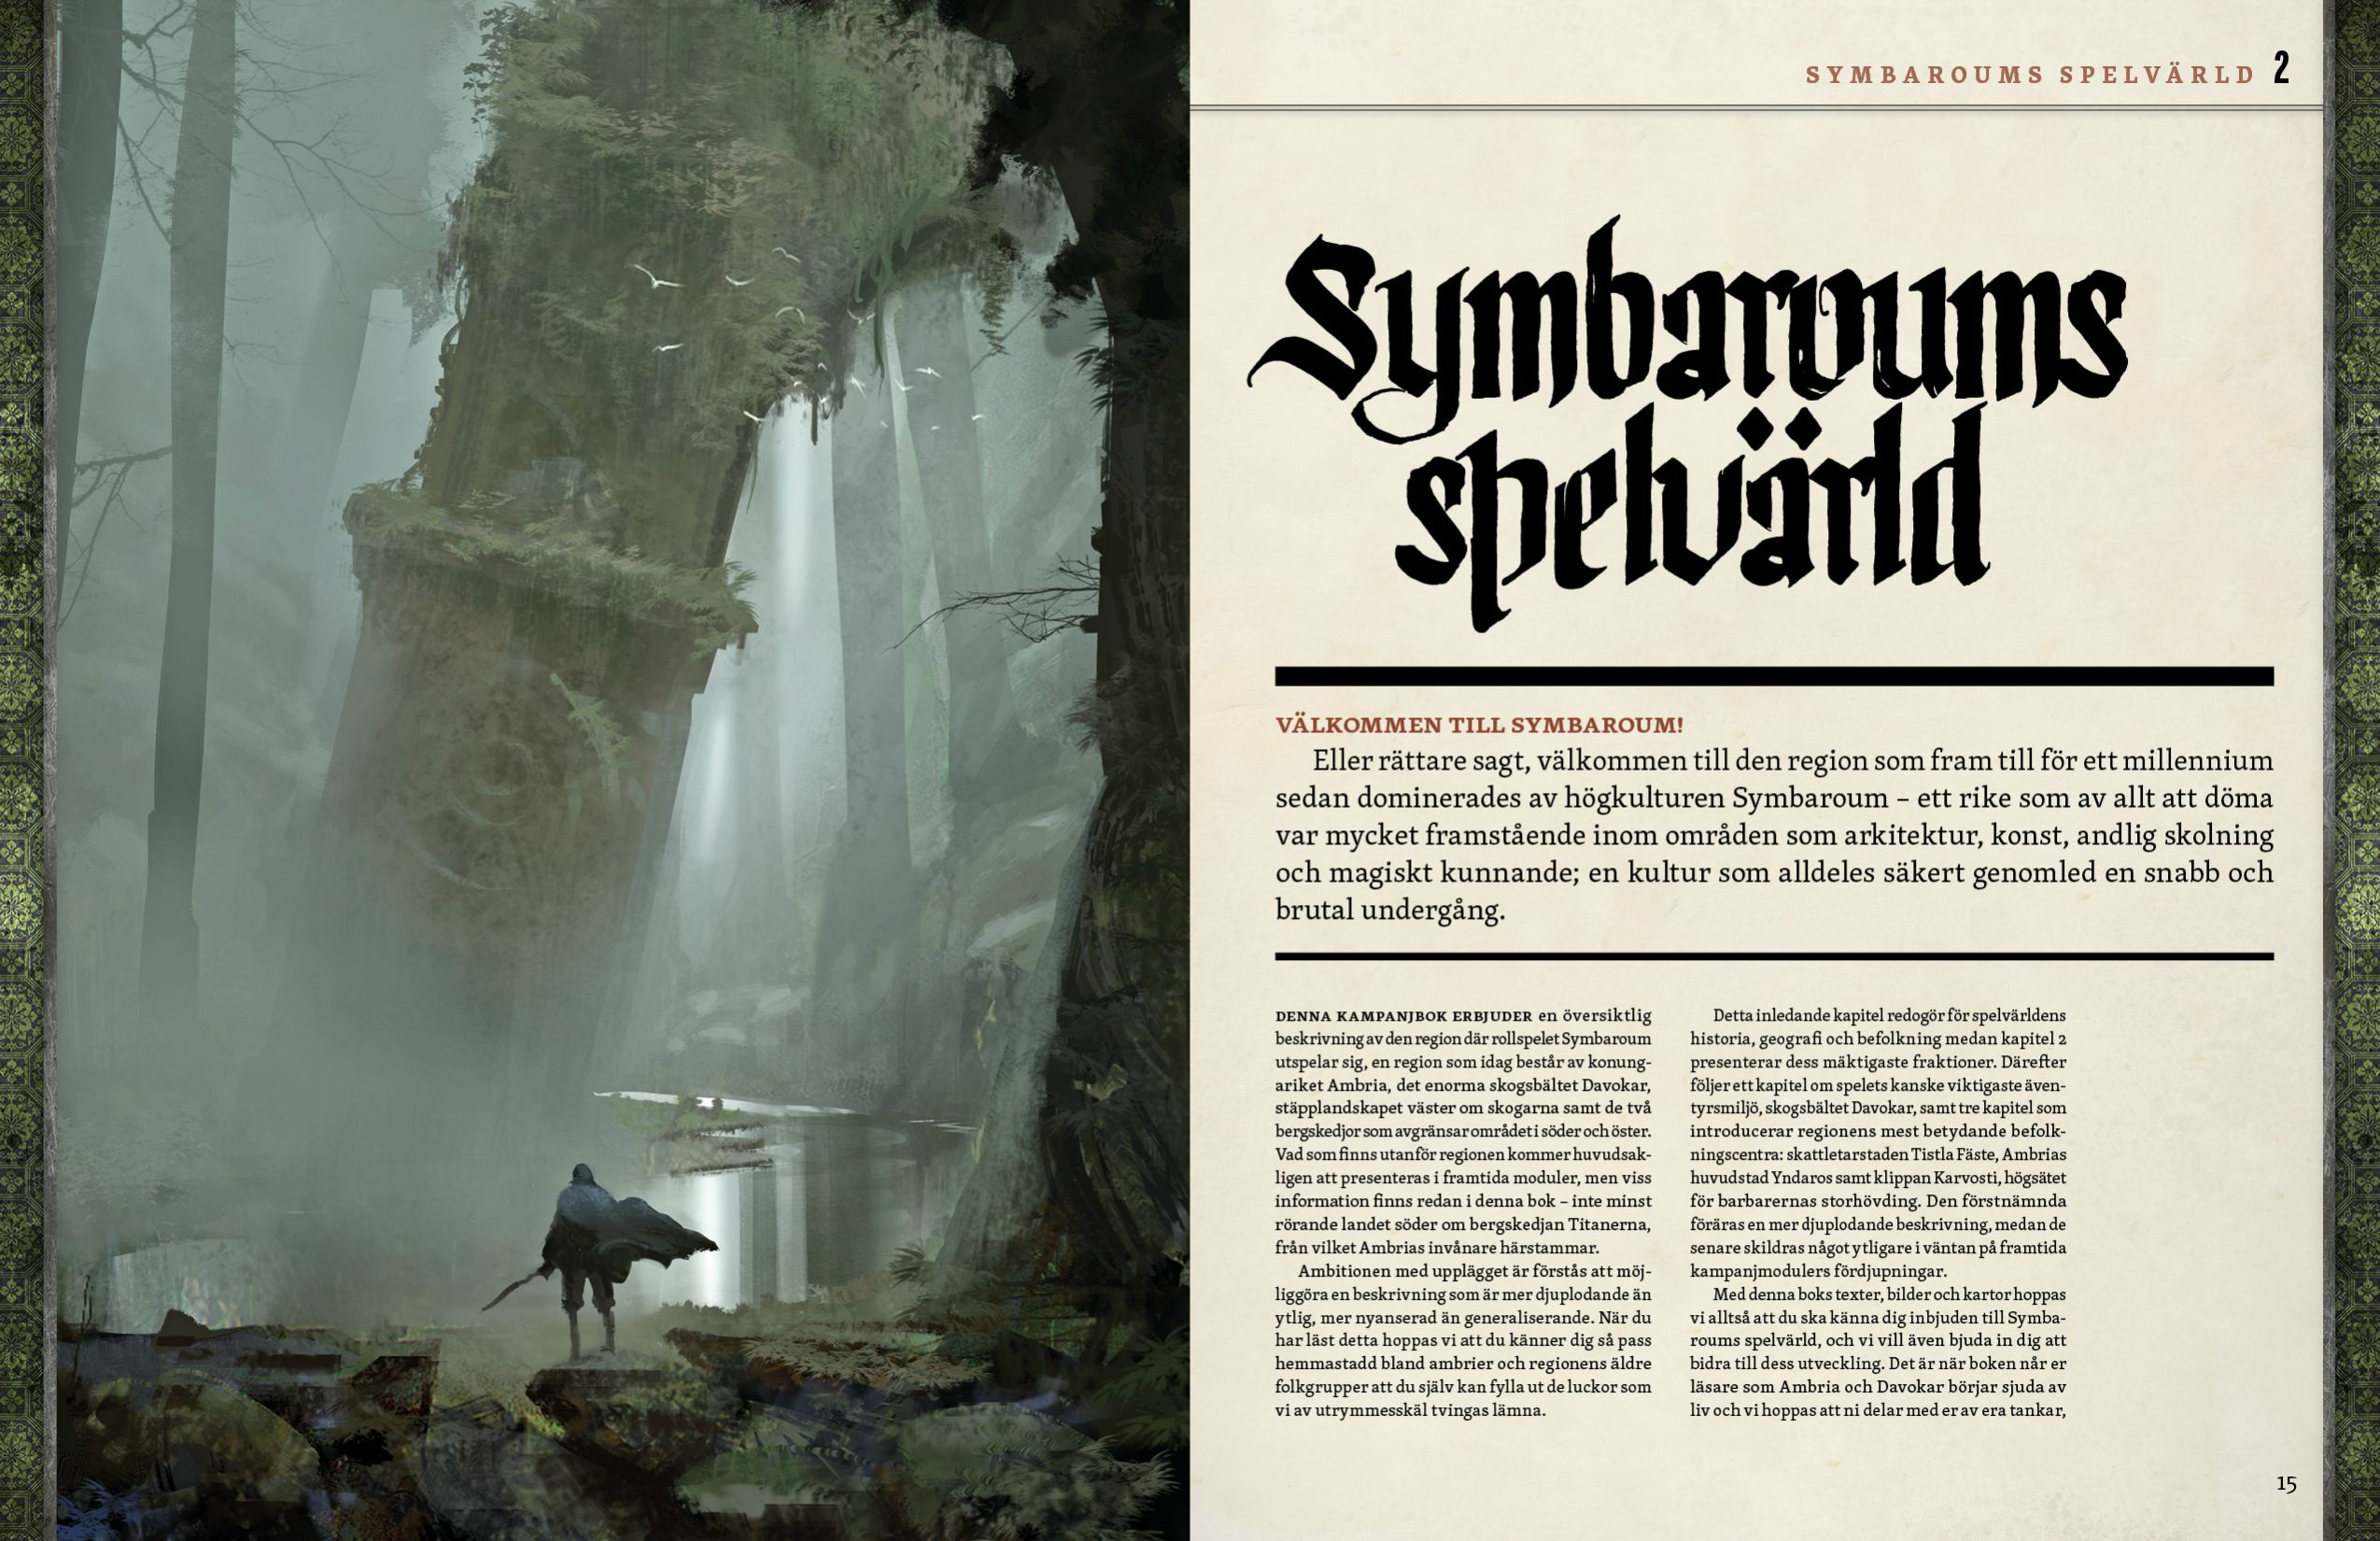 04 - The Symbaroum world